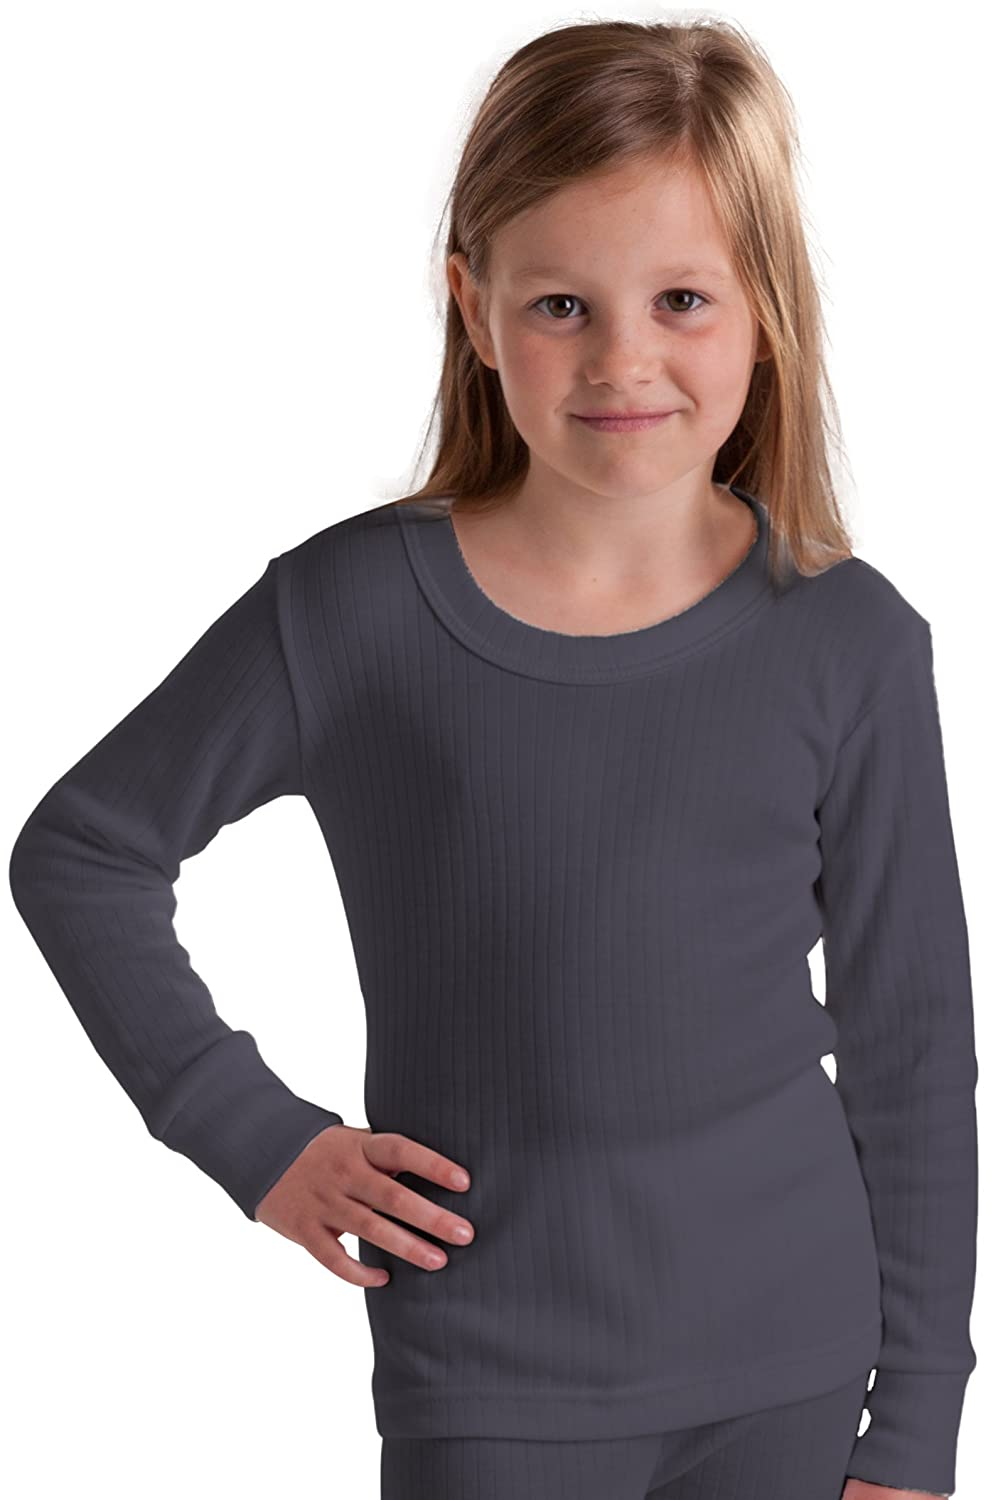 Octave Mädchen Thermo-Langarm-Shirt - extra warm - Made in GB - dunkelgrau - 6-8 Jahre [Brust: 60, 9-66 cm]